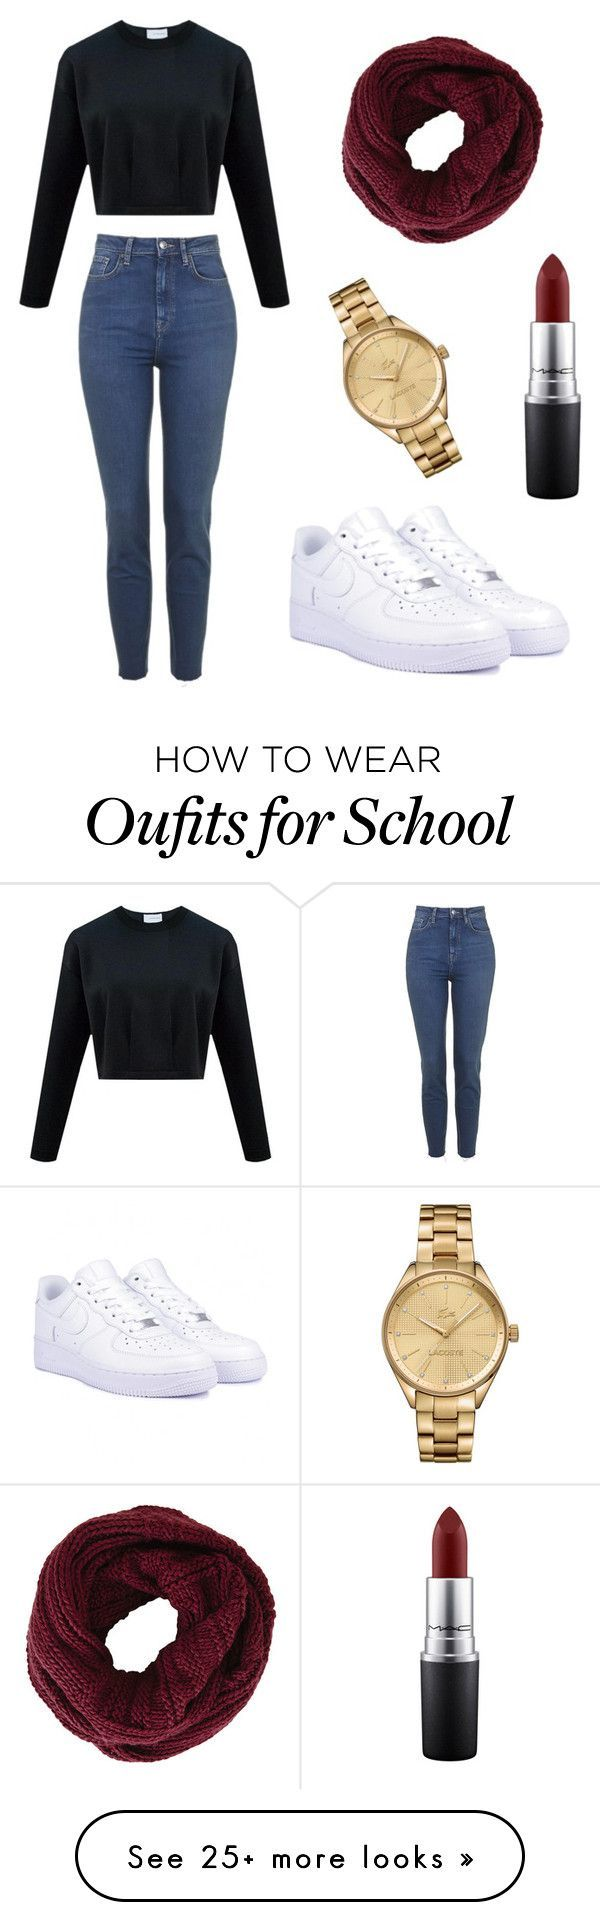 """School look"" by maryjufer on Polyvore featuring NIKE, BCBGMAXAZRIA, Lacoste and MAC Cosmetics"